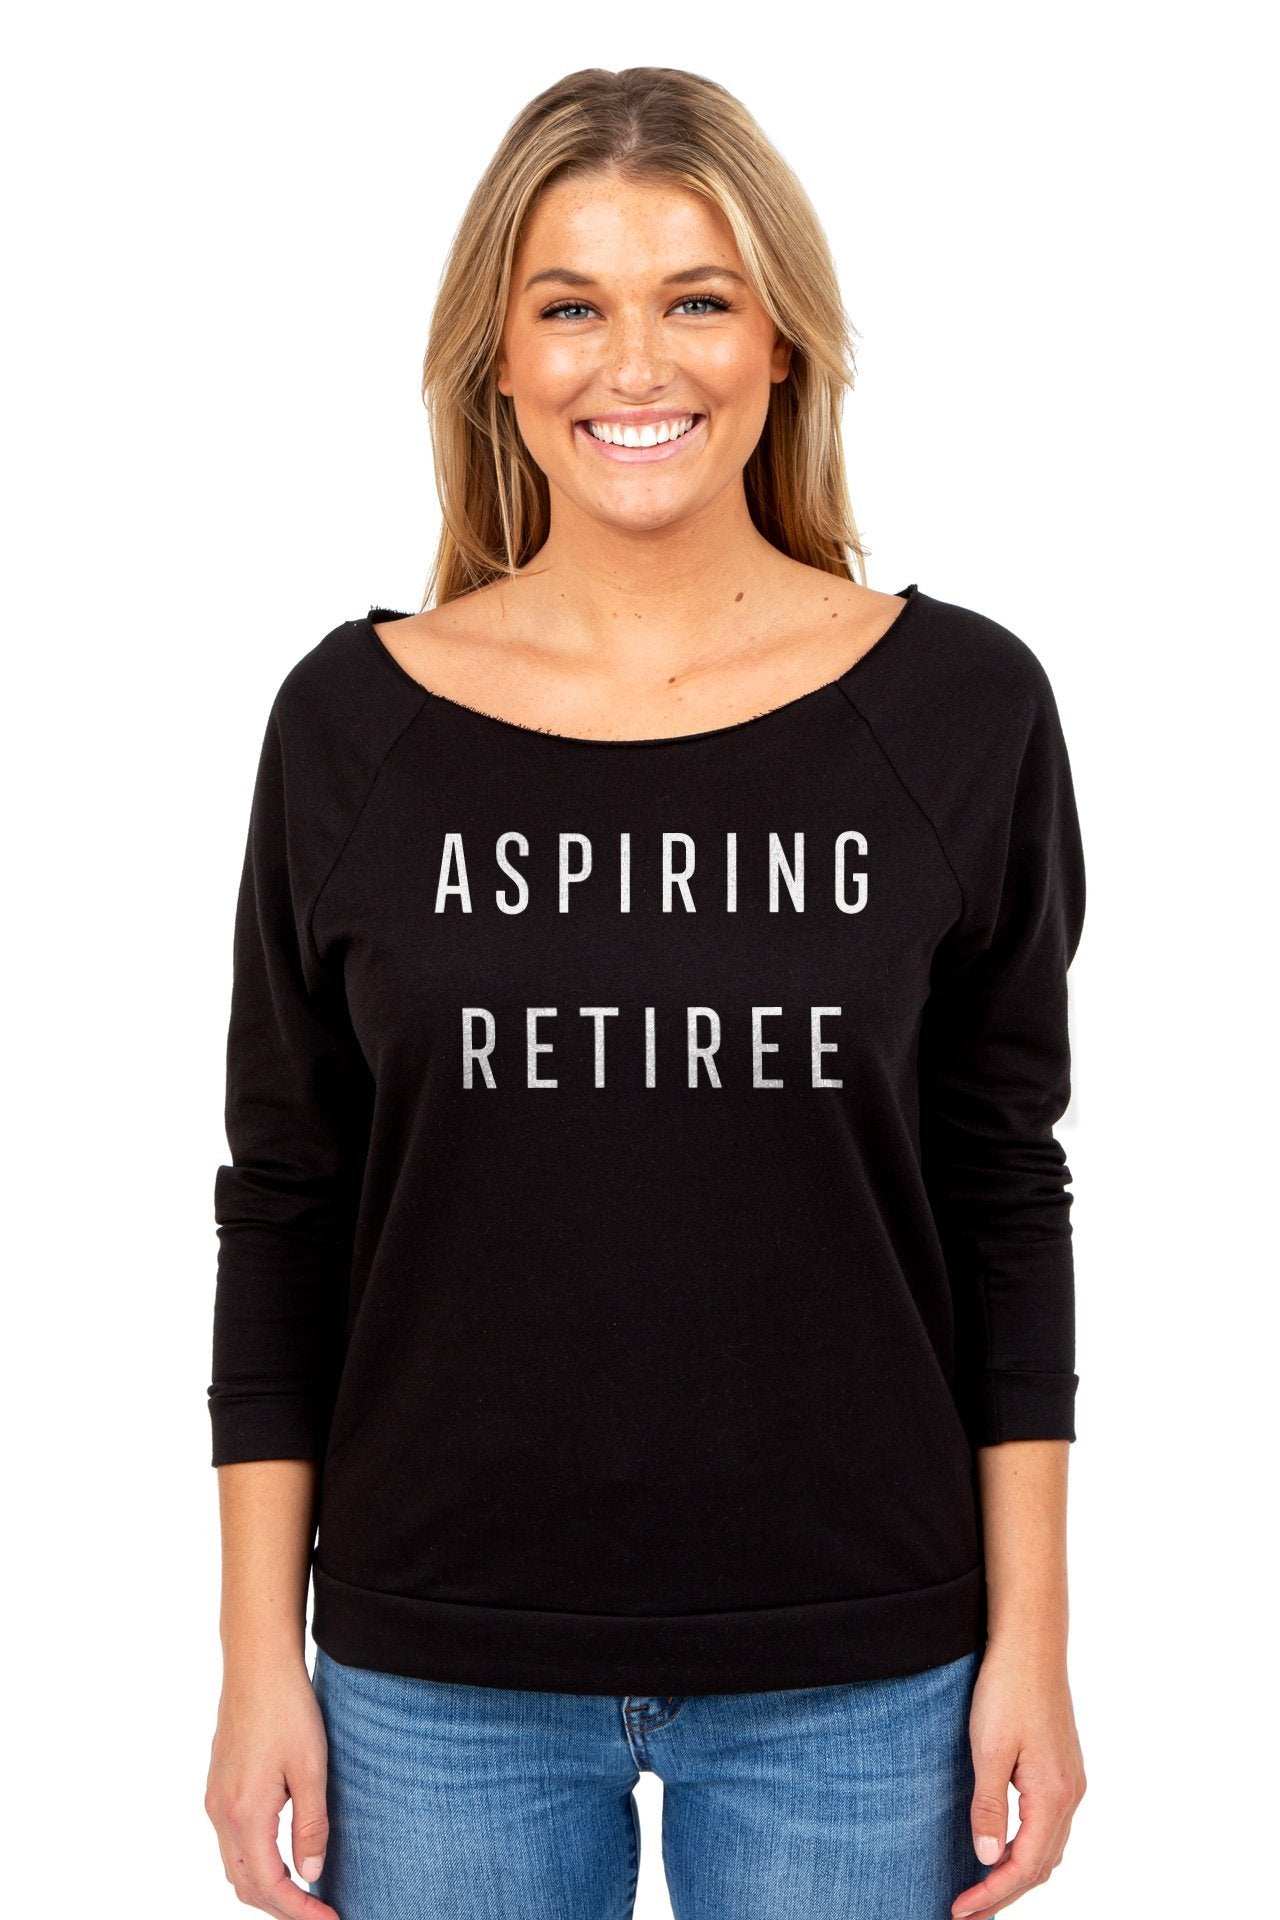 Aspiring Retiree Women's Graphic Printed Lightweight Slouchy 3/4 Sleeves Sweatshirt Sport Black